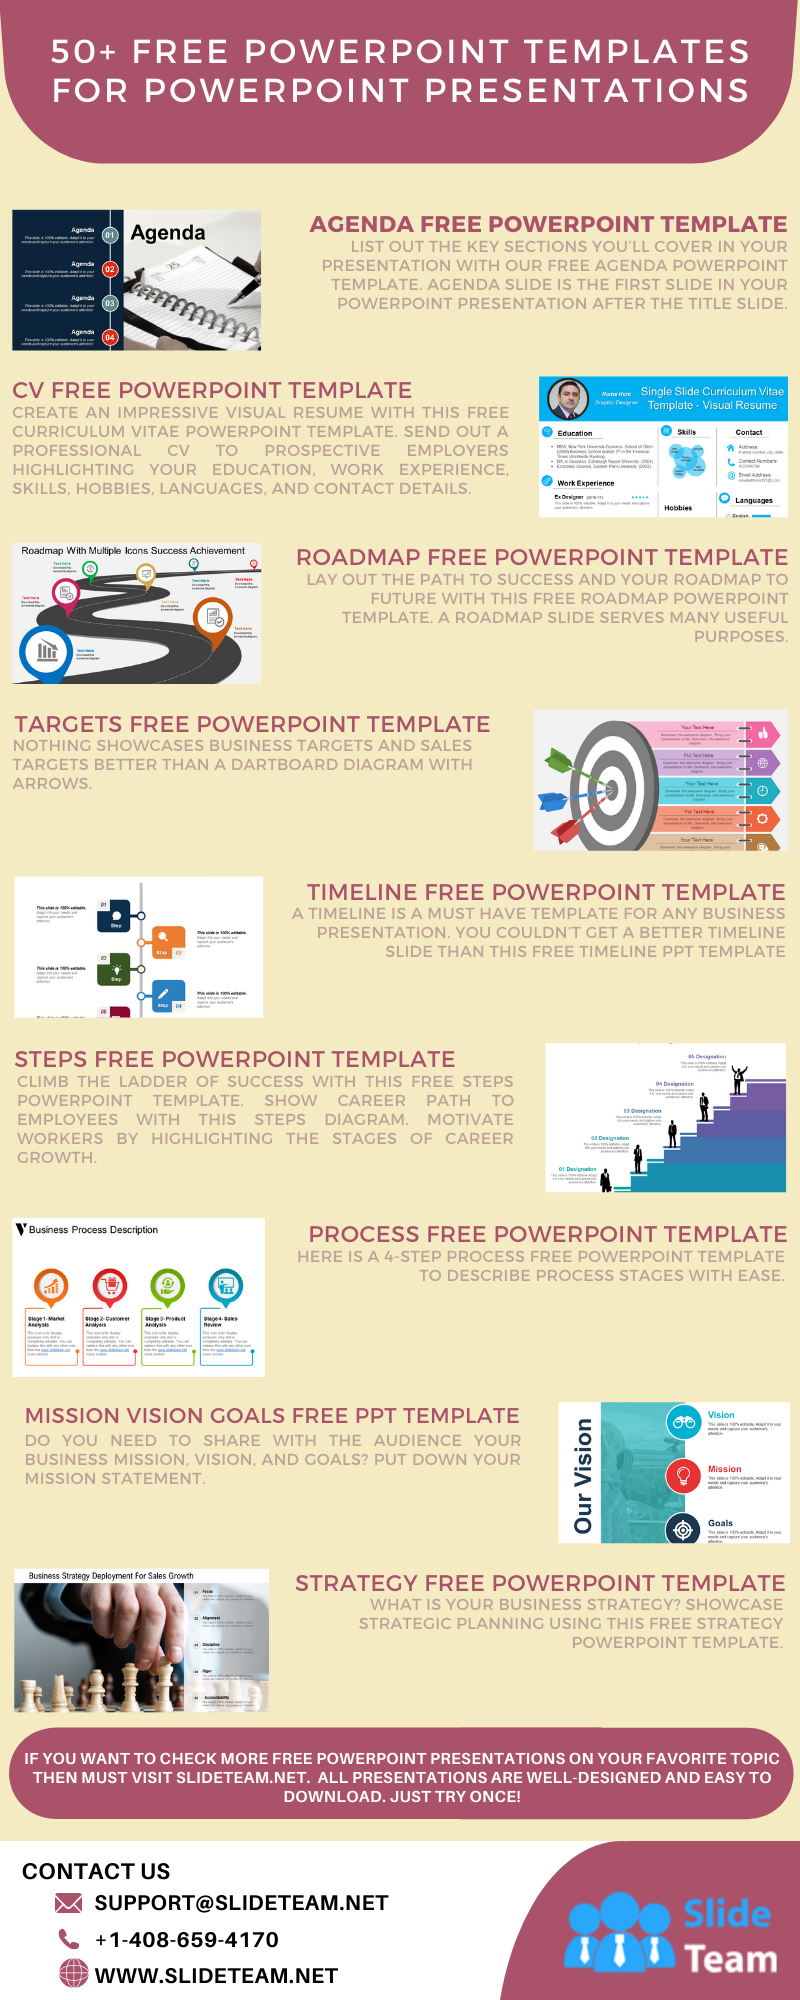 50+ Free PowerPoint Templates for PowerPoint Presentations #infographic #Design & Research #PowerPoint #Presentations